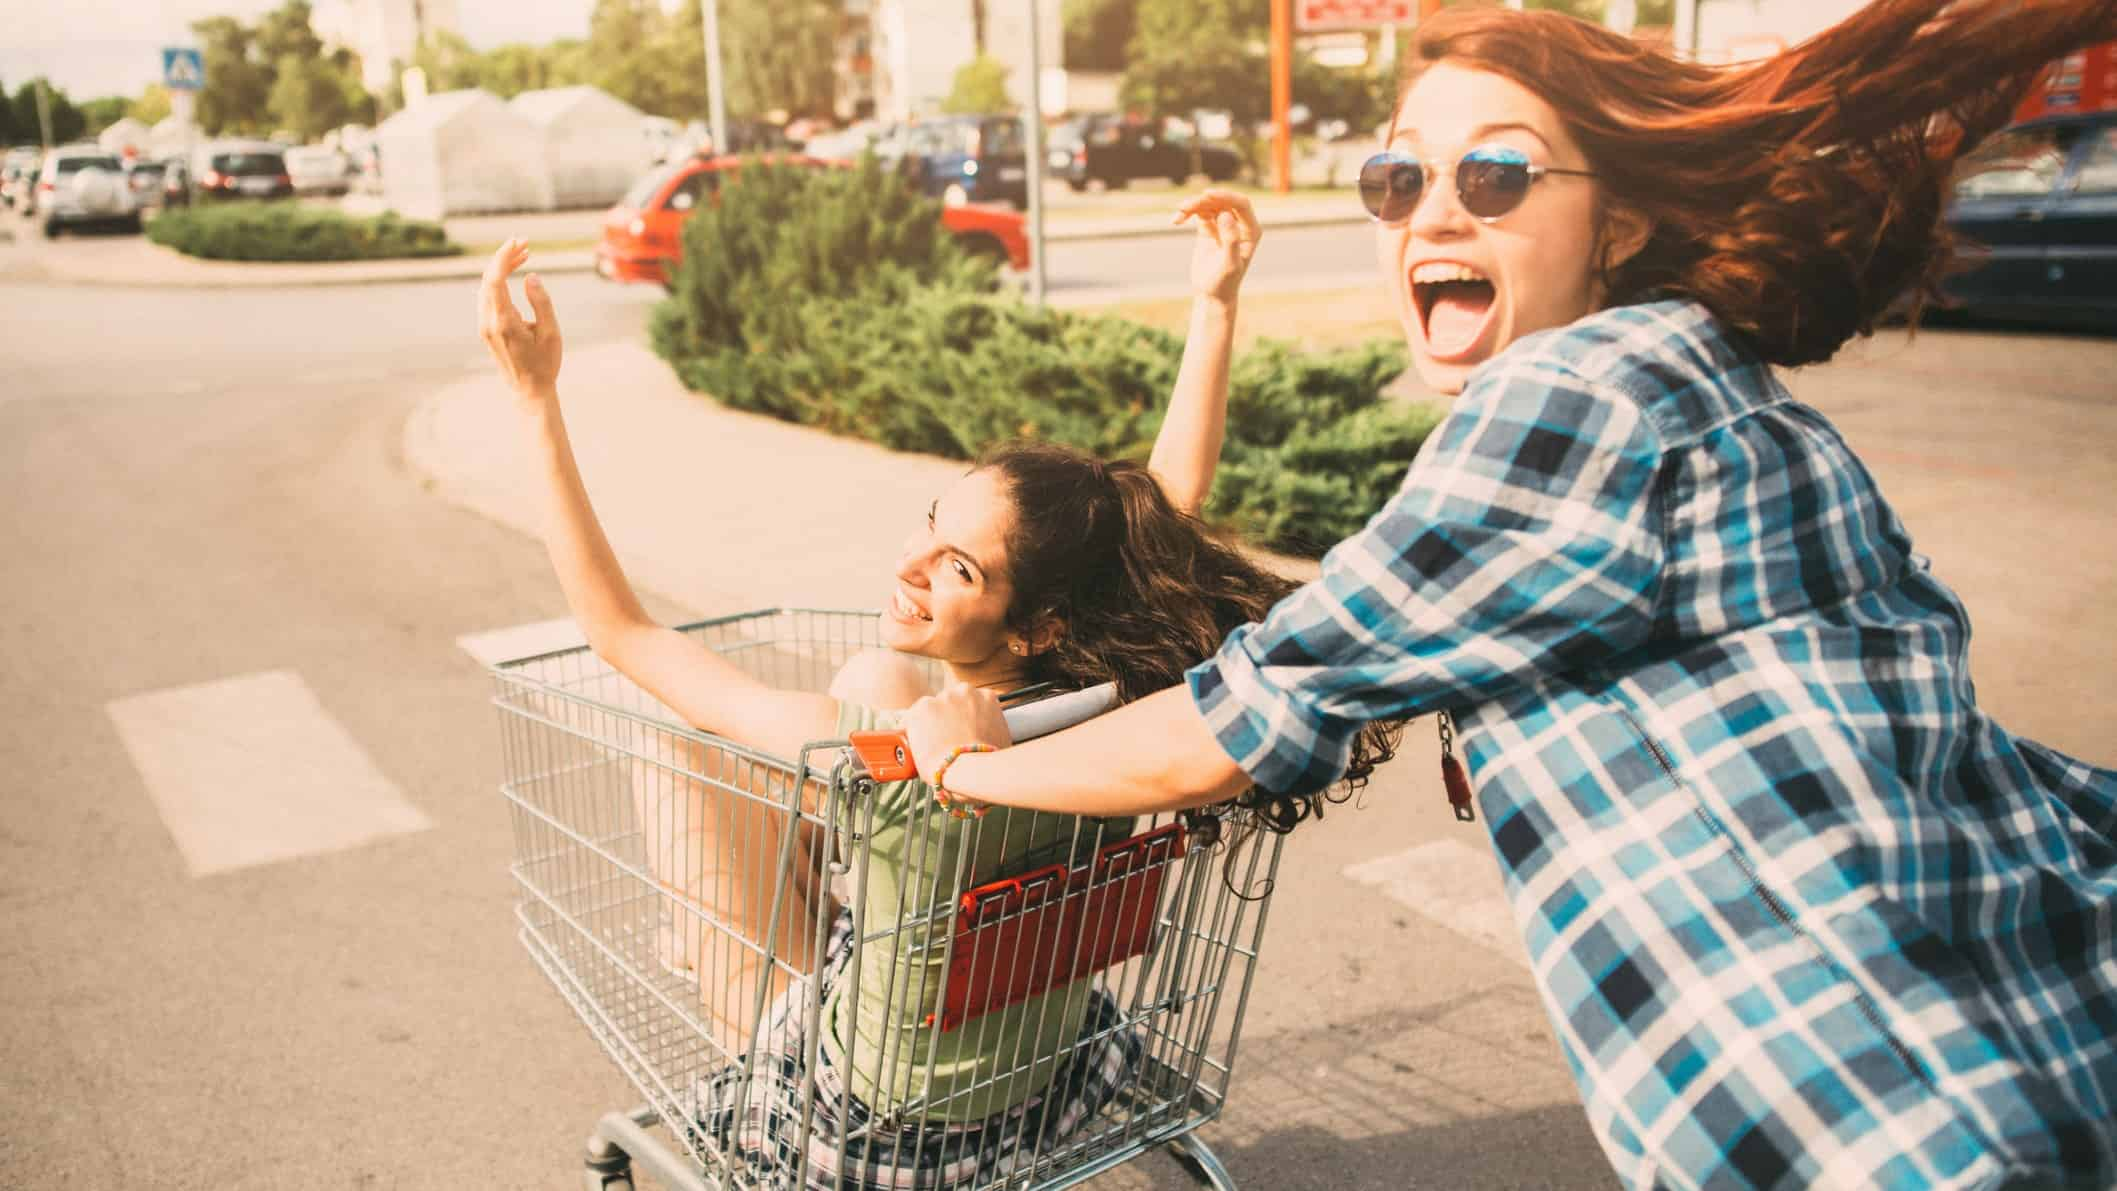 A laughing woman pushes her friend in a supermarket trolley